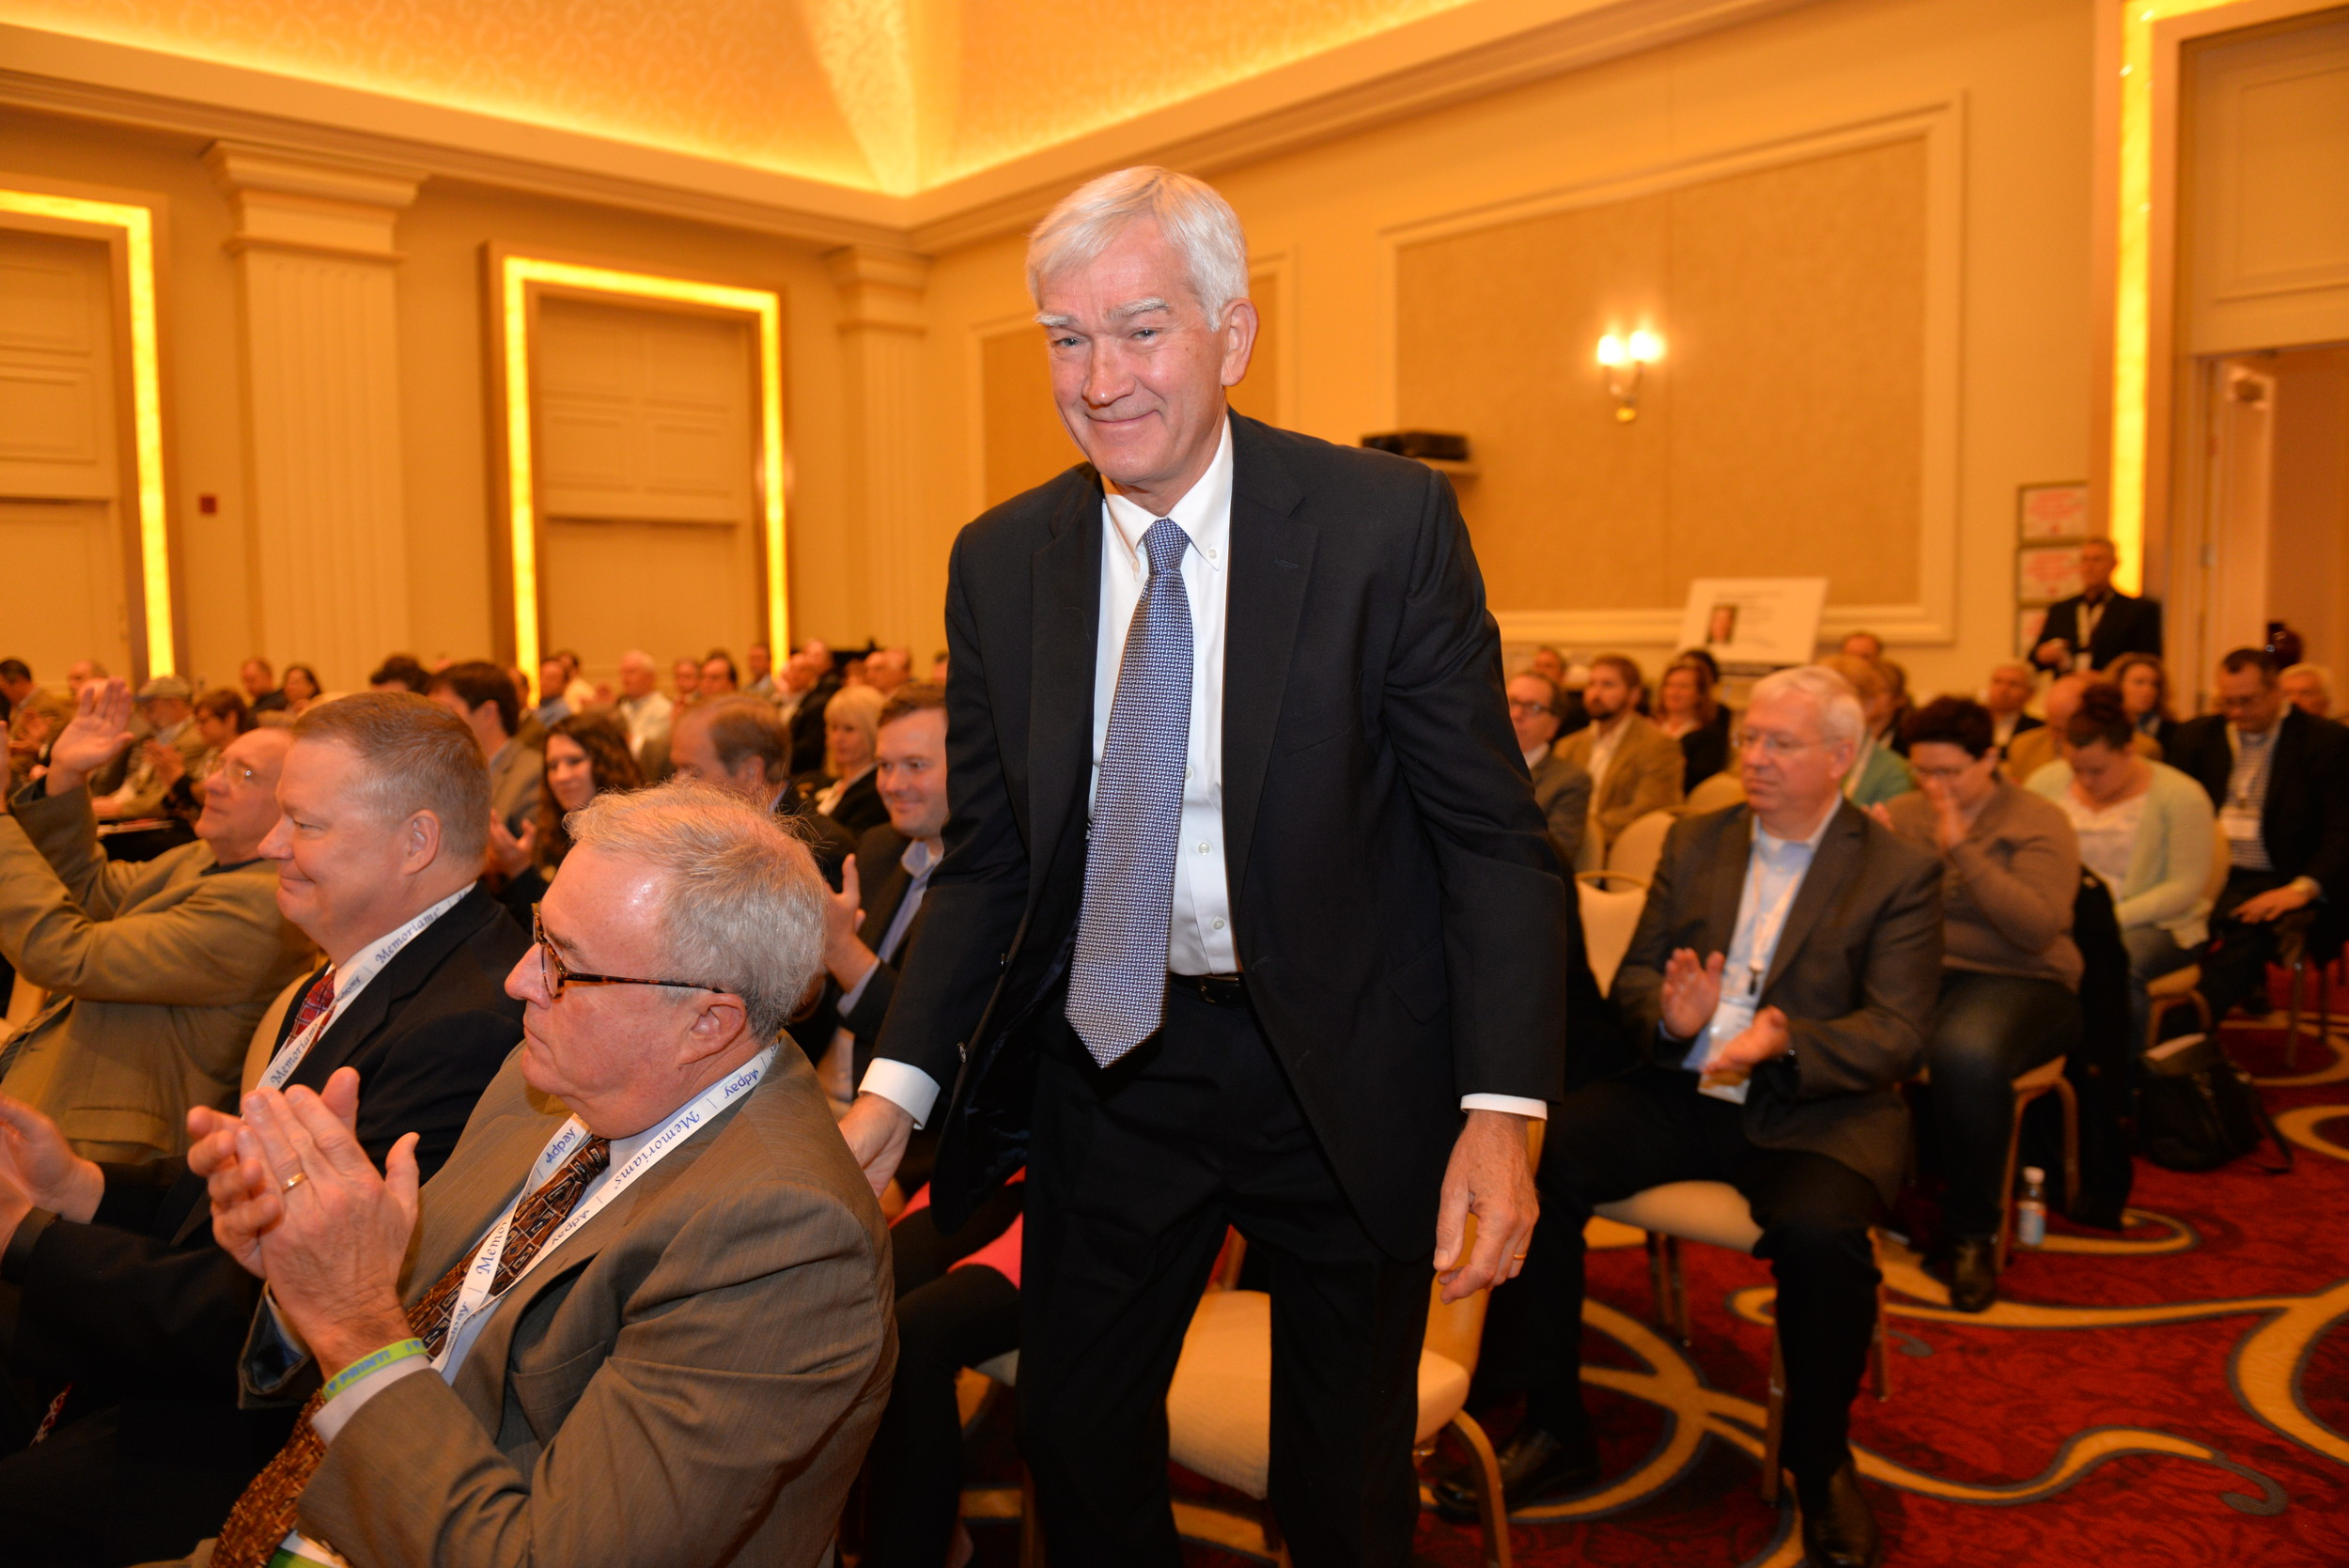 Tom Shaw rises from his seat at Inland's 2016 Annual Meeting to receive the Ralph D. Casey/Minnesota Award honoring industry figures who are agenda-setters bringing about change while exemplifying the best in journalism and community service. .